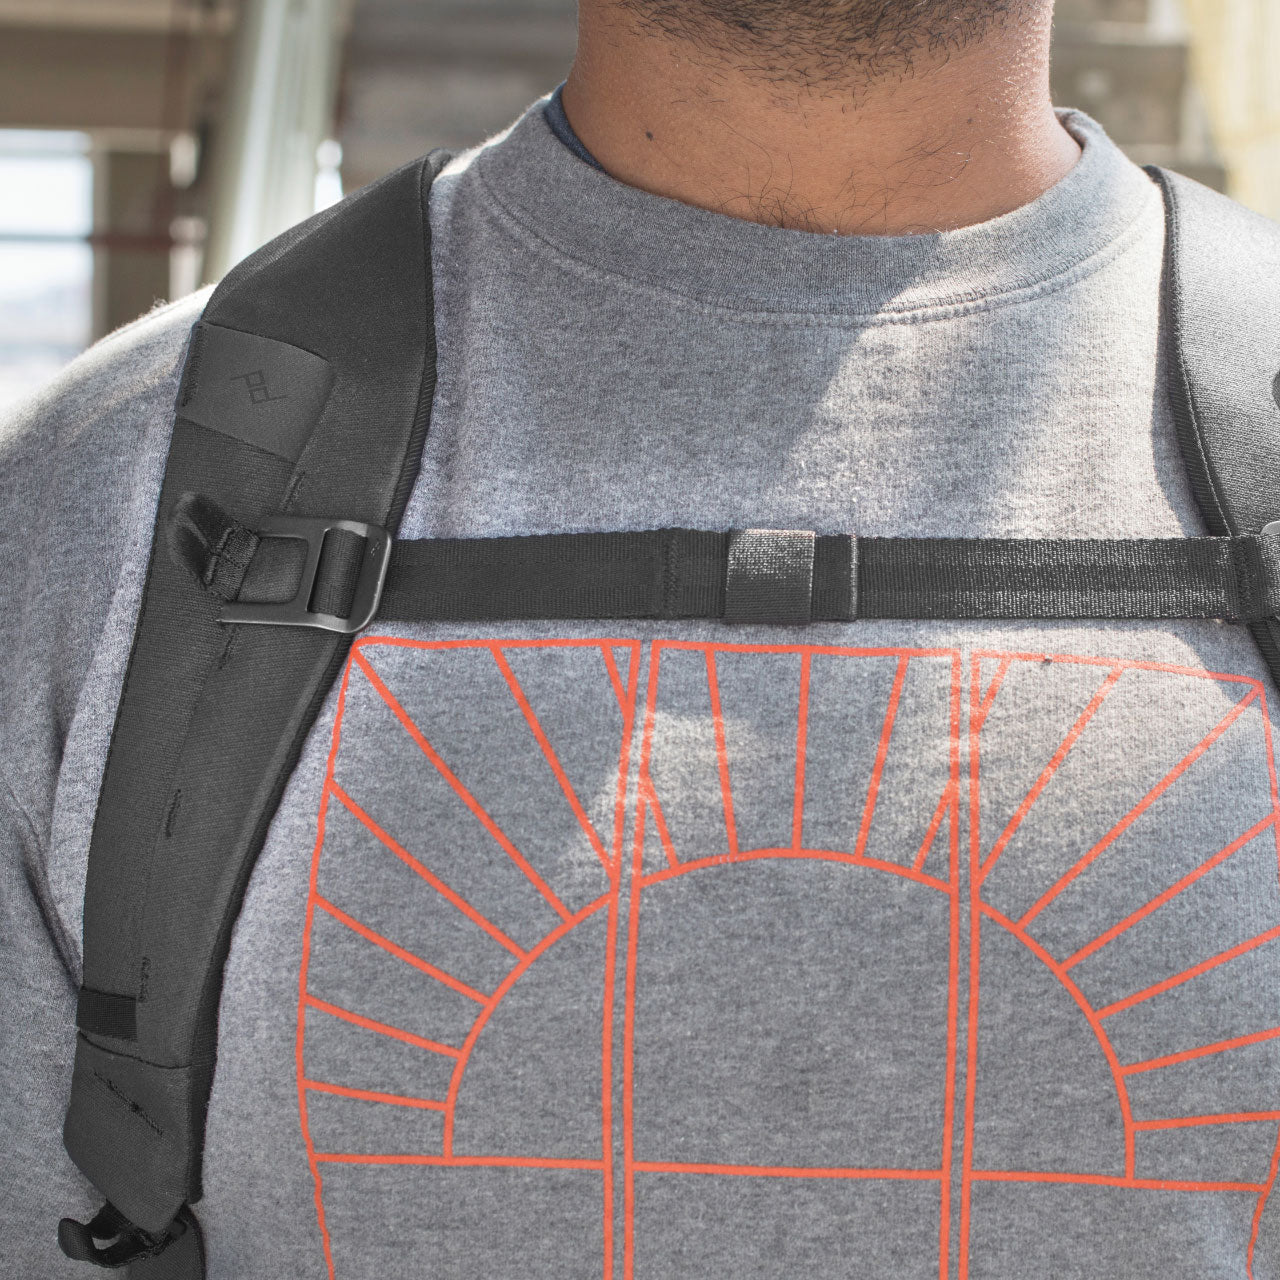 Man removing laptop from Everyday Backpack